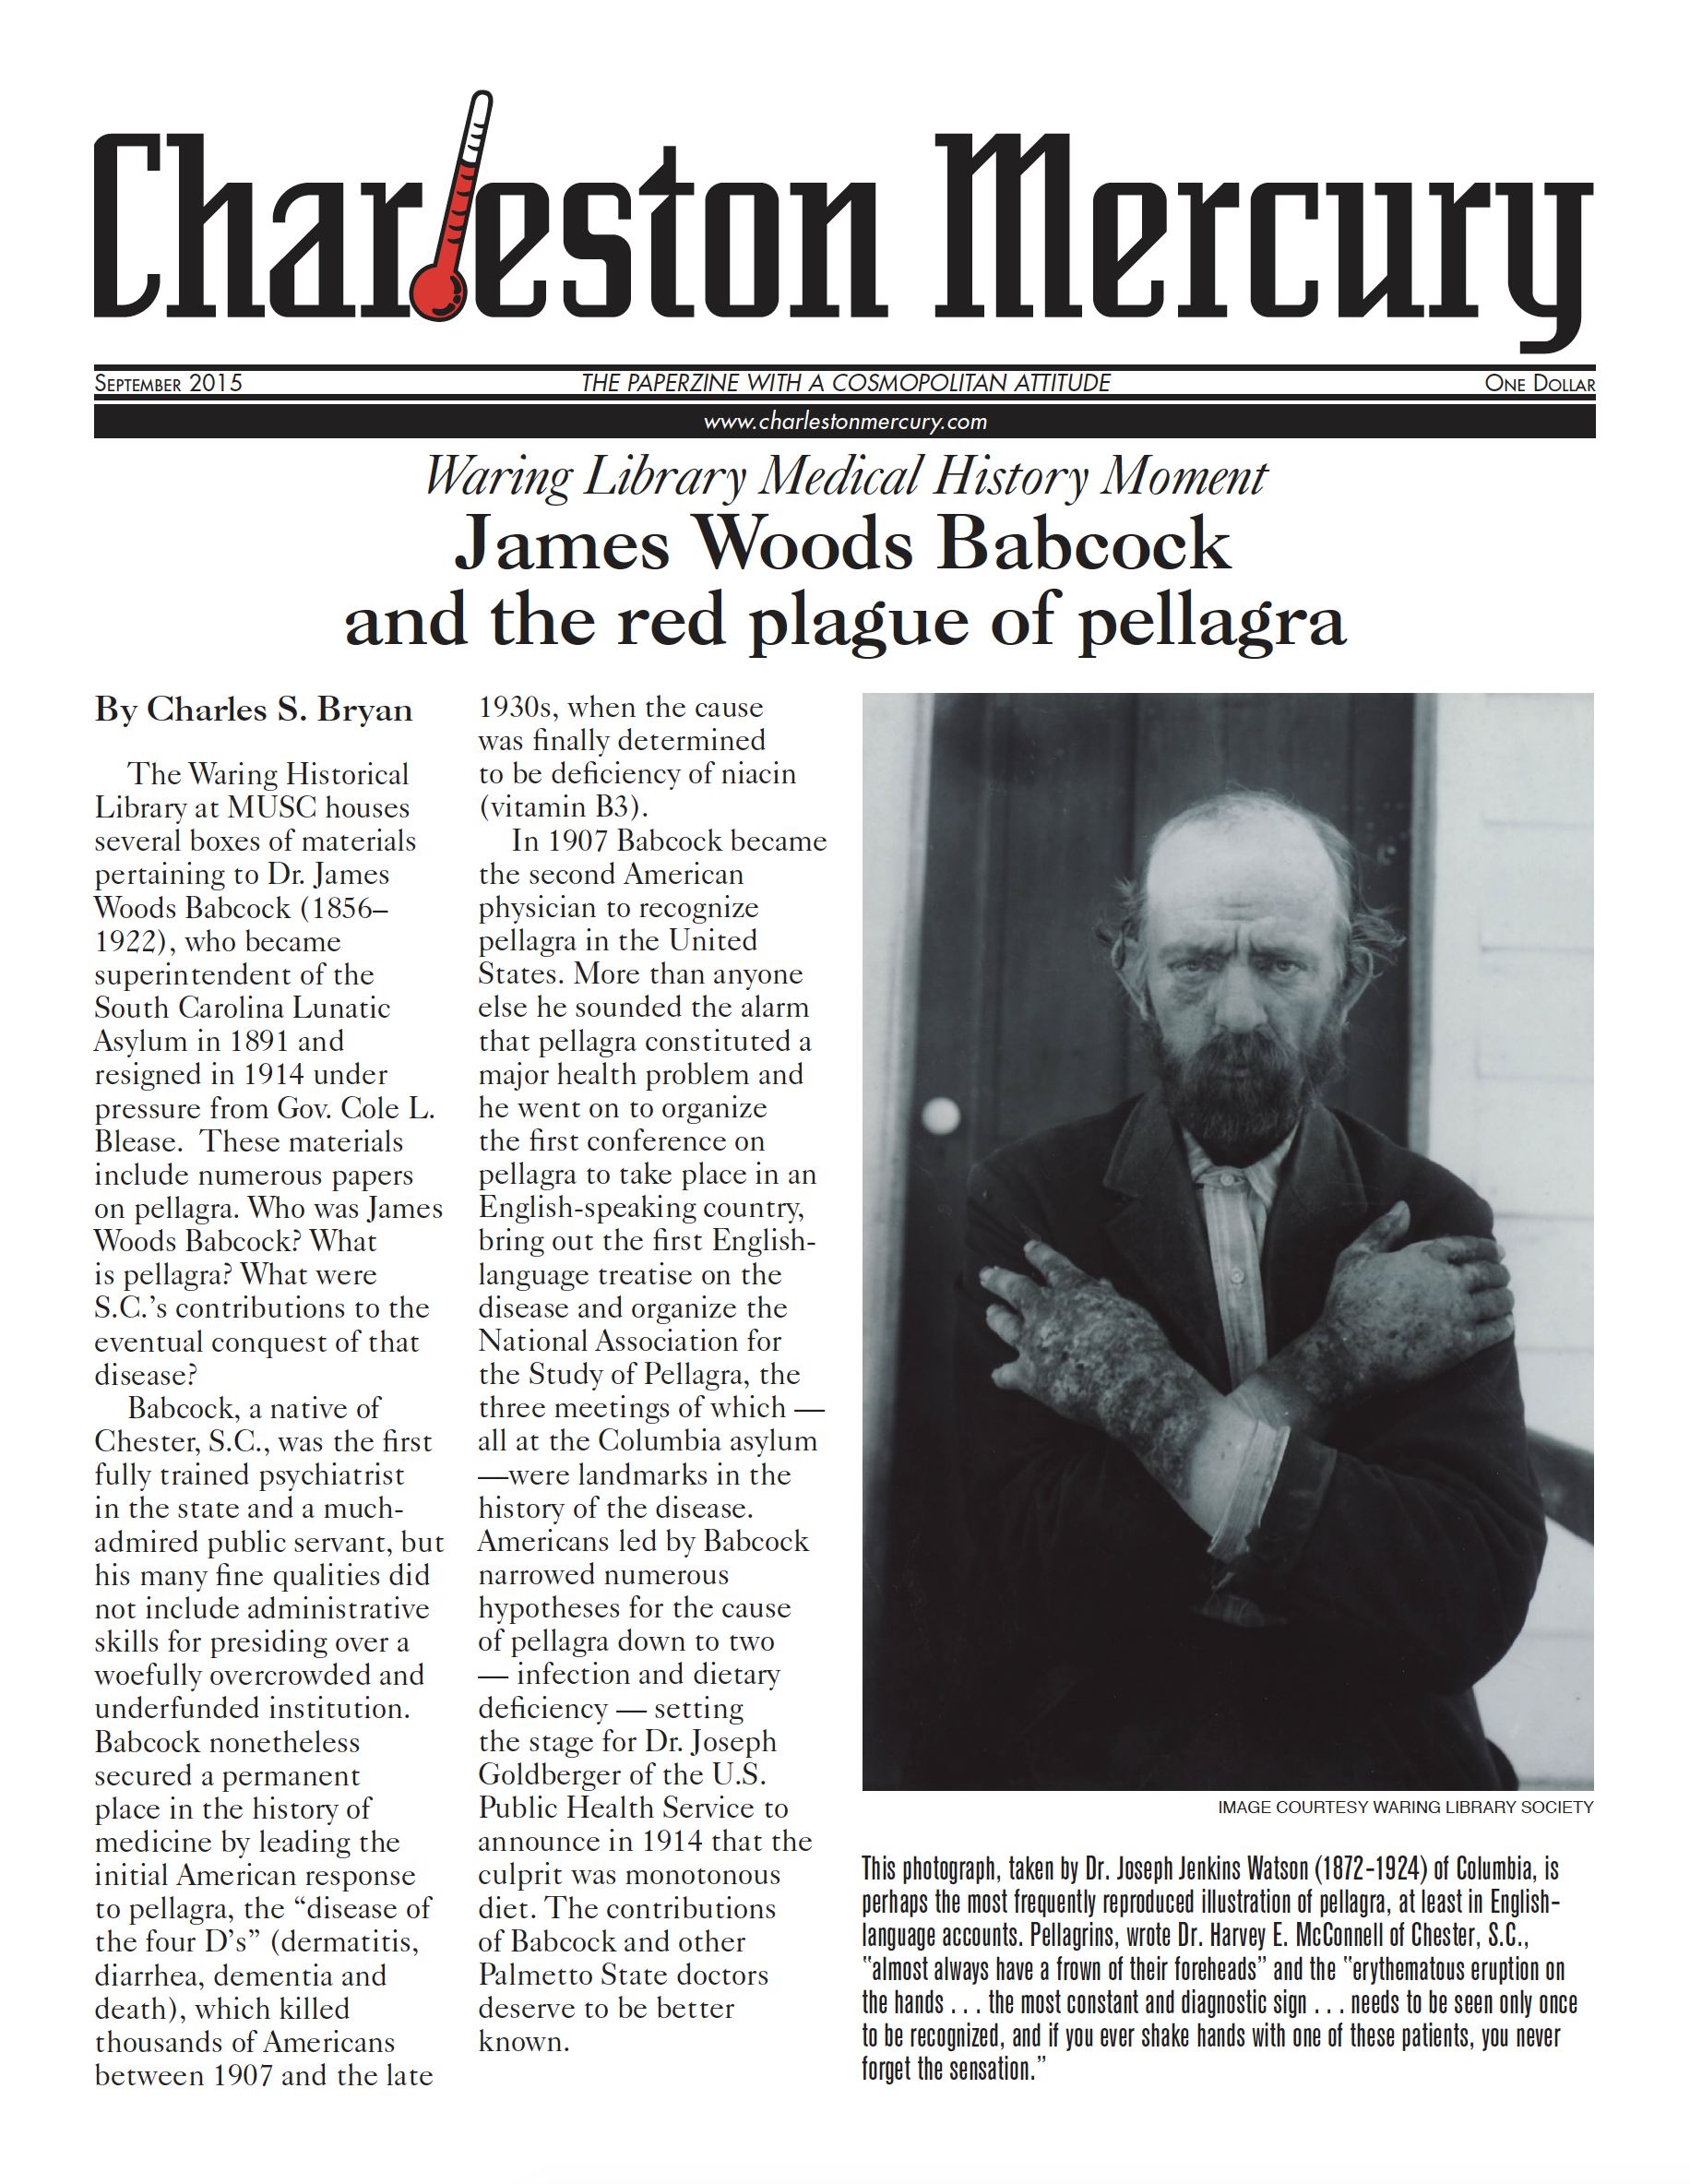 Charleston Mercury, September 2015